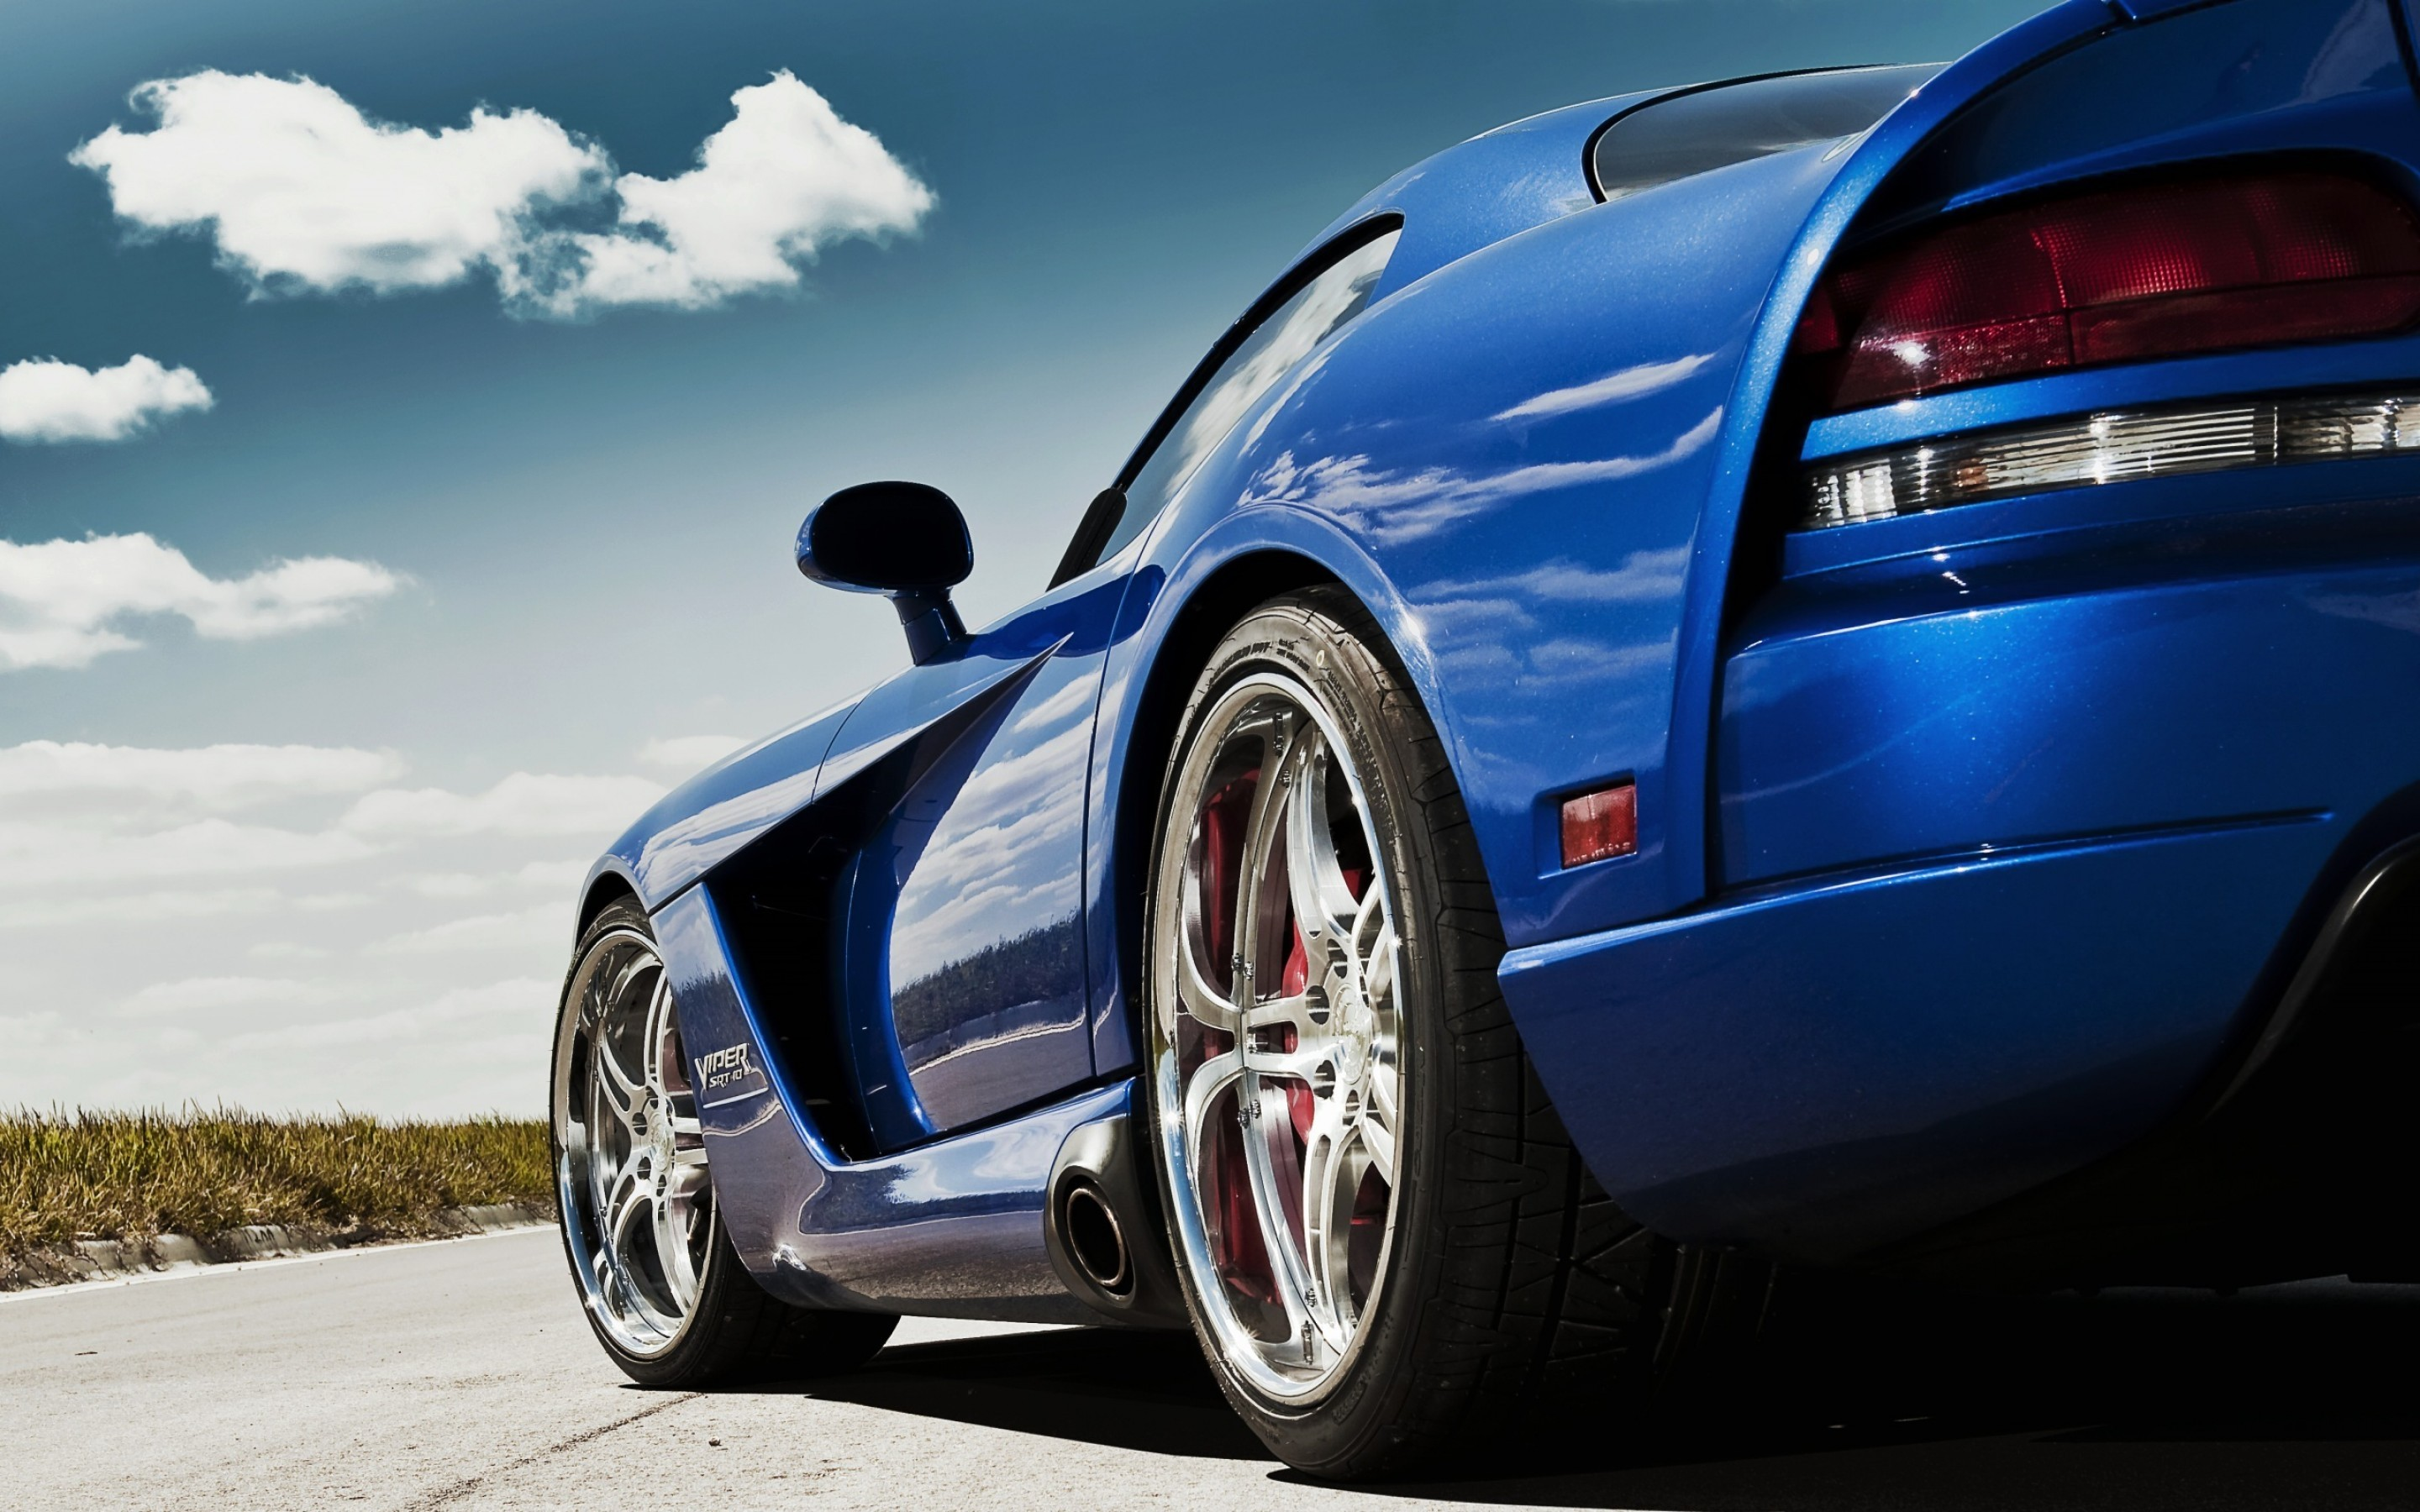 Dodge Viper Wallpapers, Pictures, Images